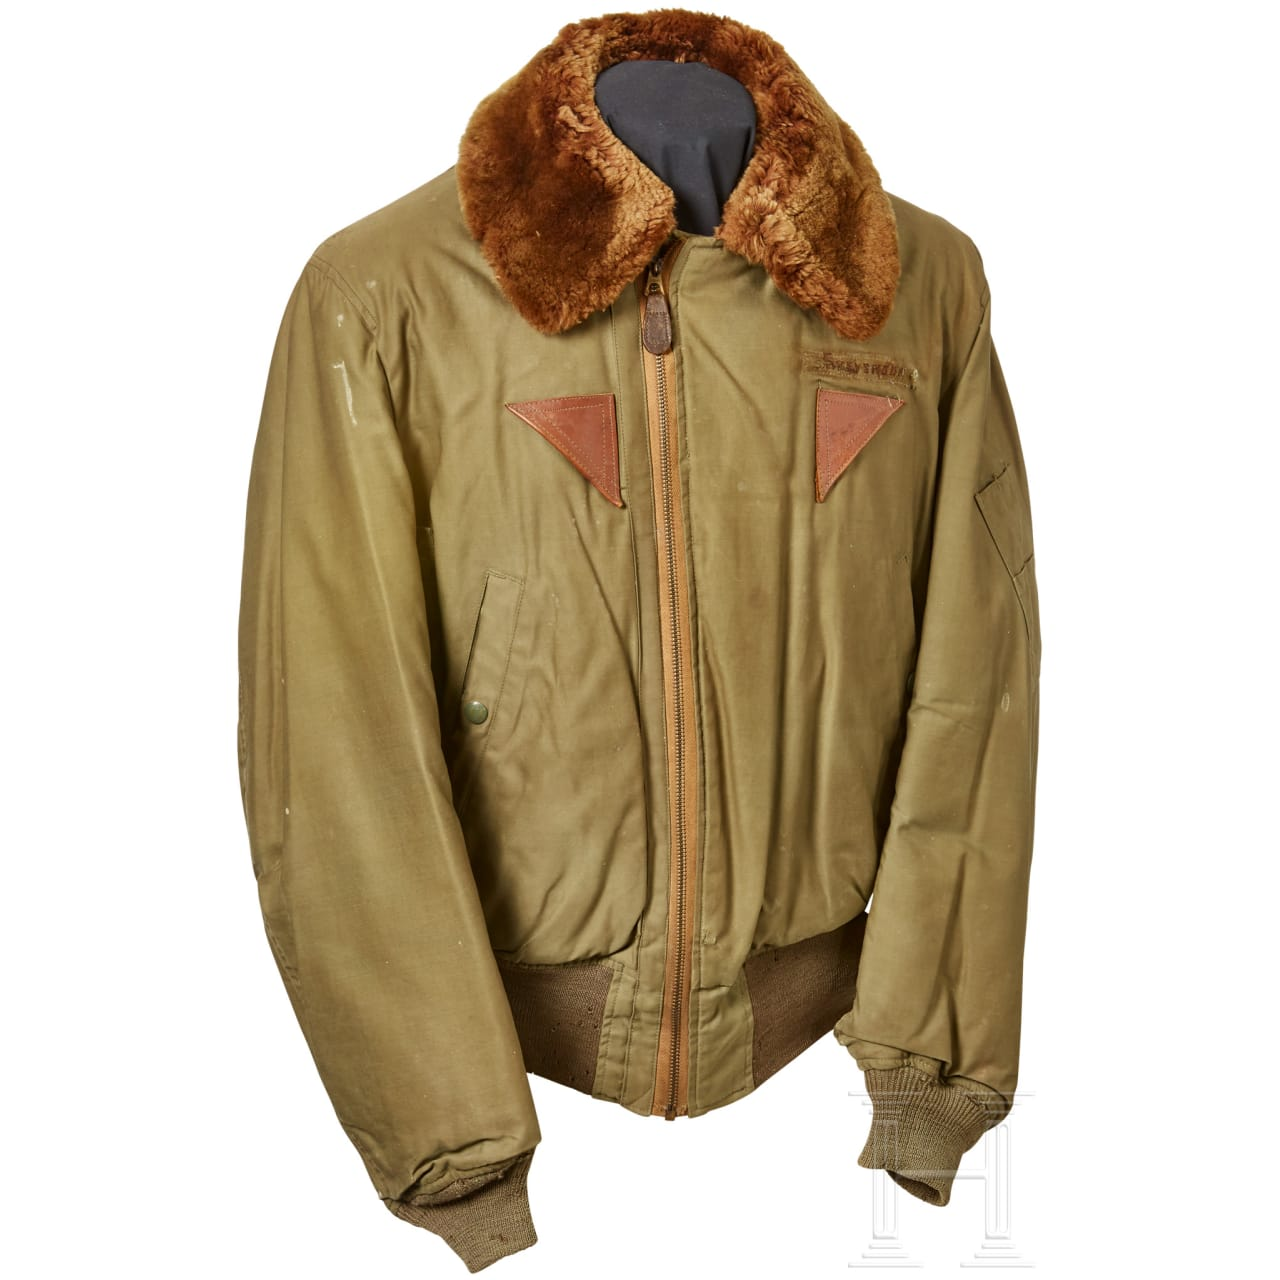 An AAF Flight Jacket for Aviation Personnel